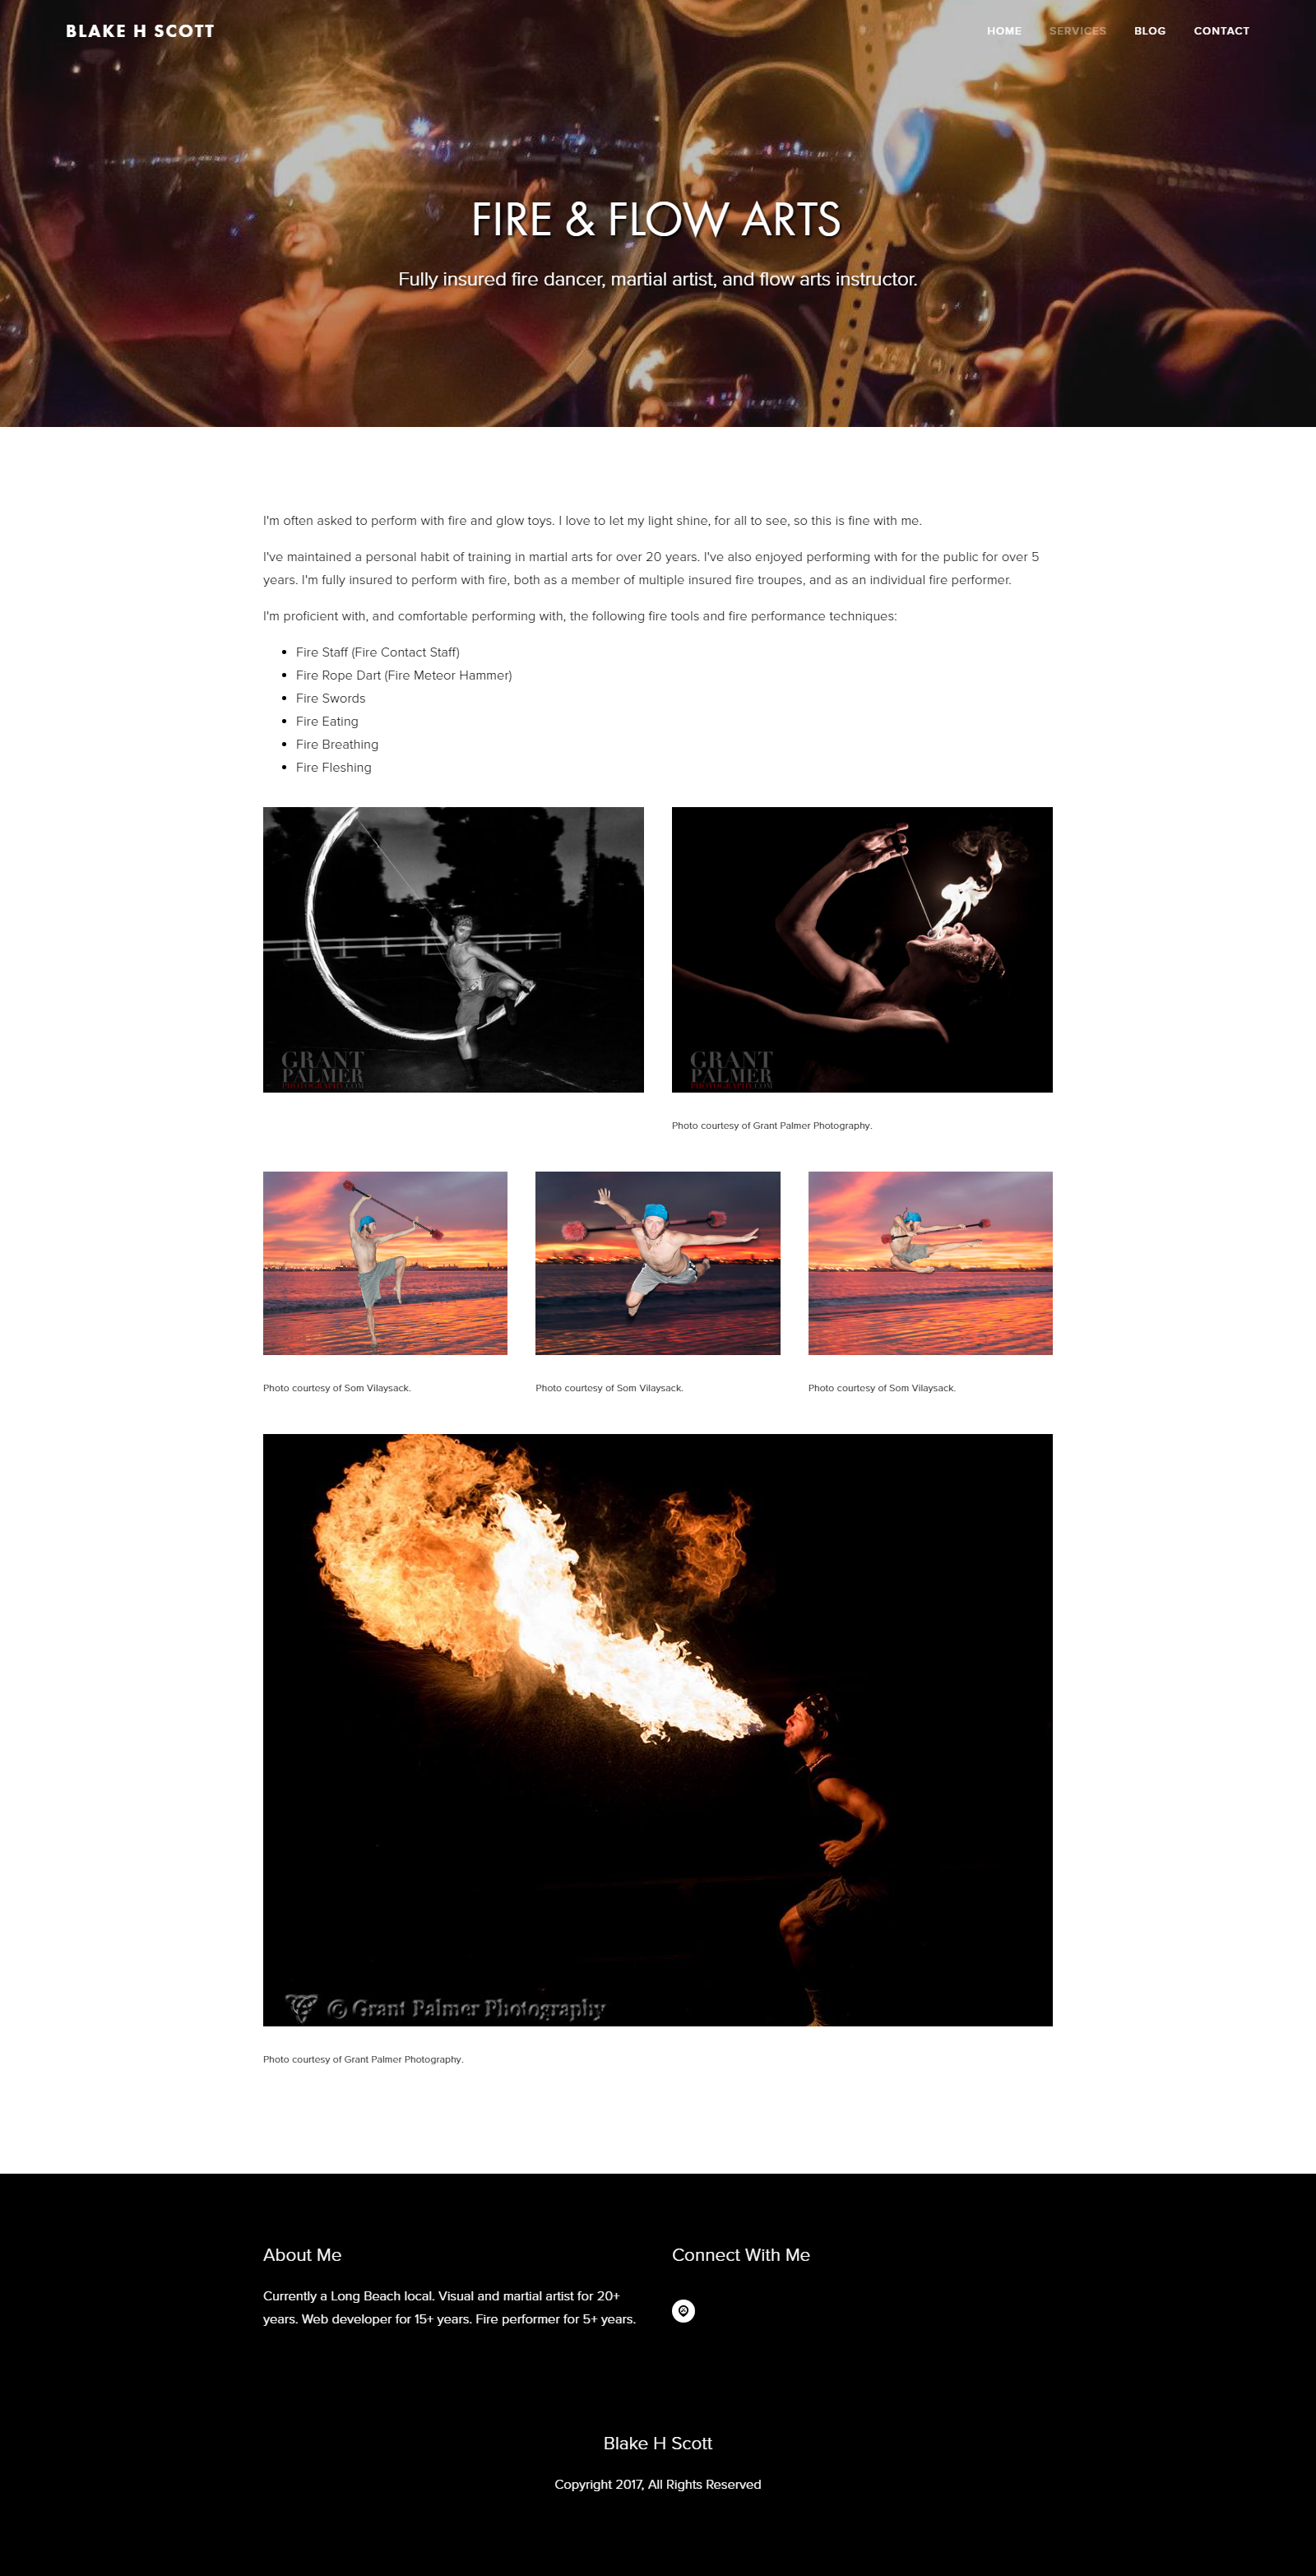 screencapture-blake-scott-633a-squarespace-fire-performance-1493017165152.png